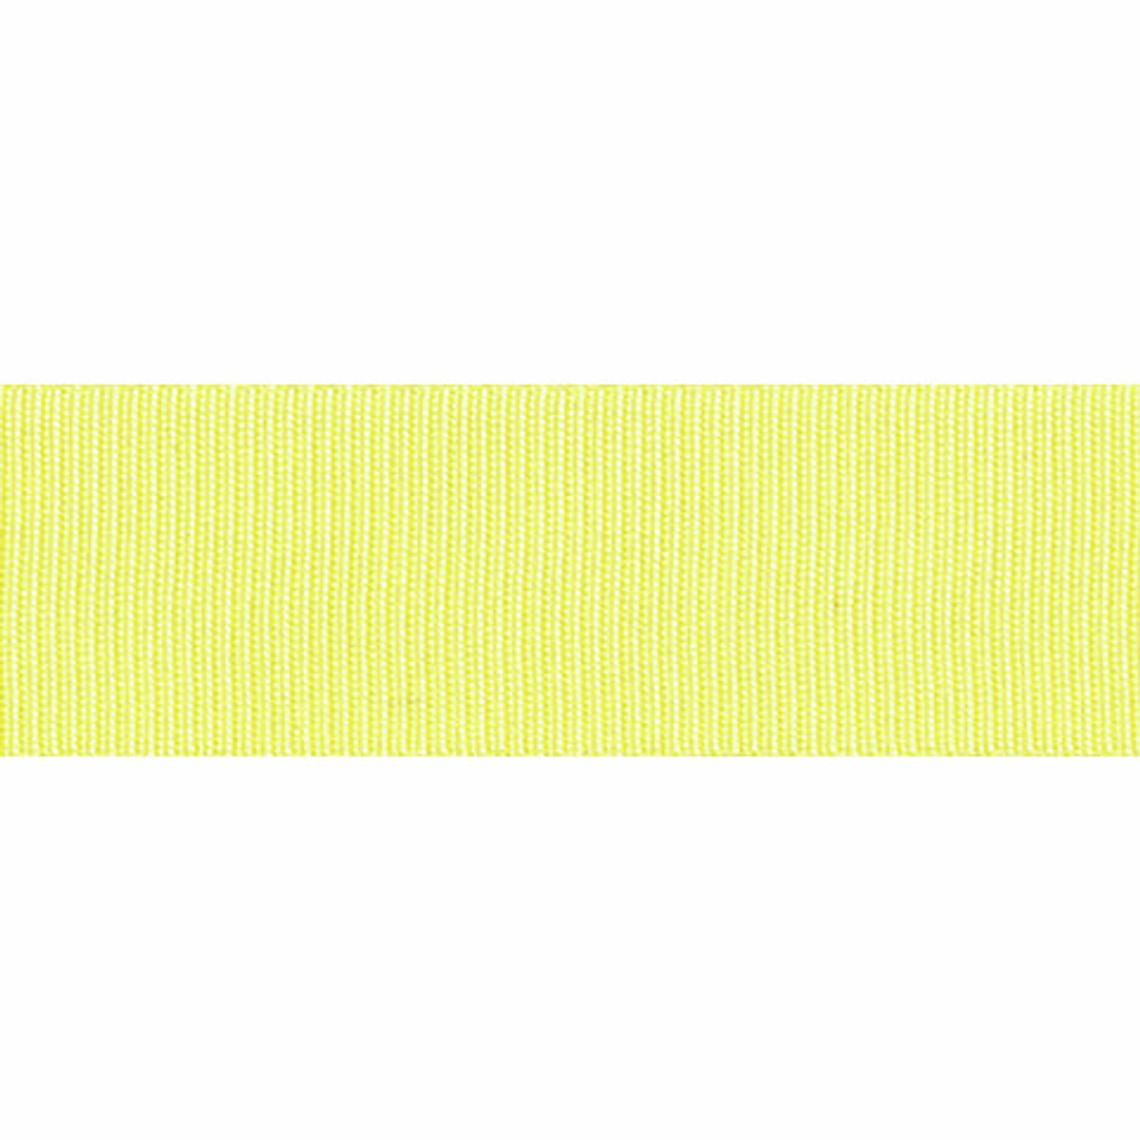 5 Metres Yellow Lemon- Grossgrain - 16mm Wide - Clothes, Funishing, Craft